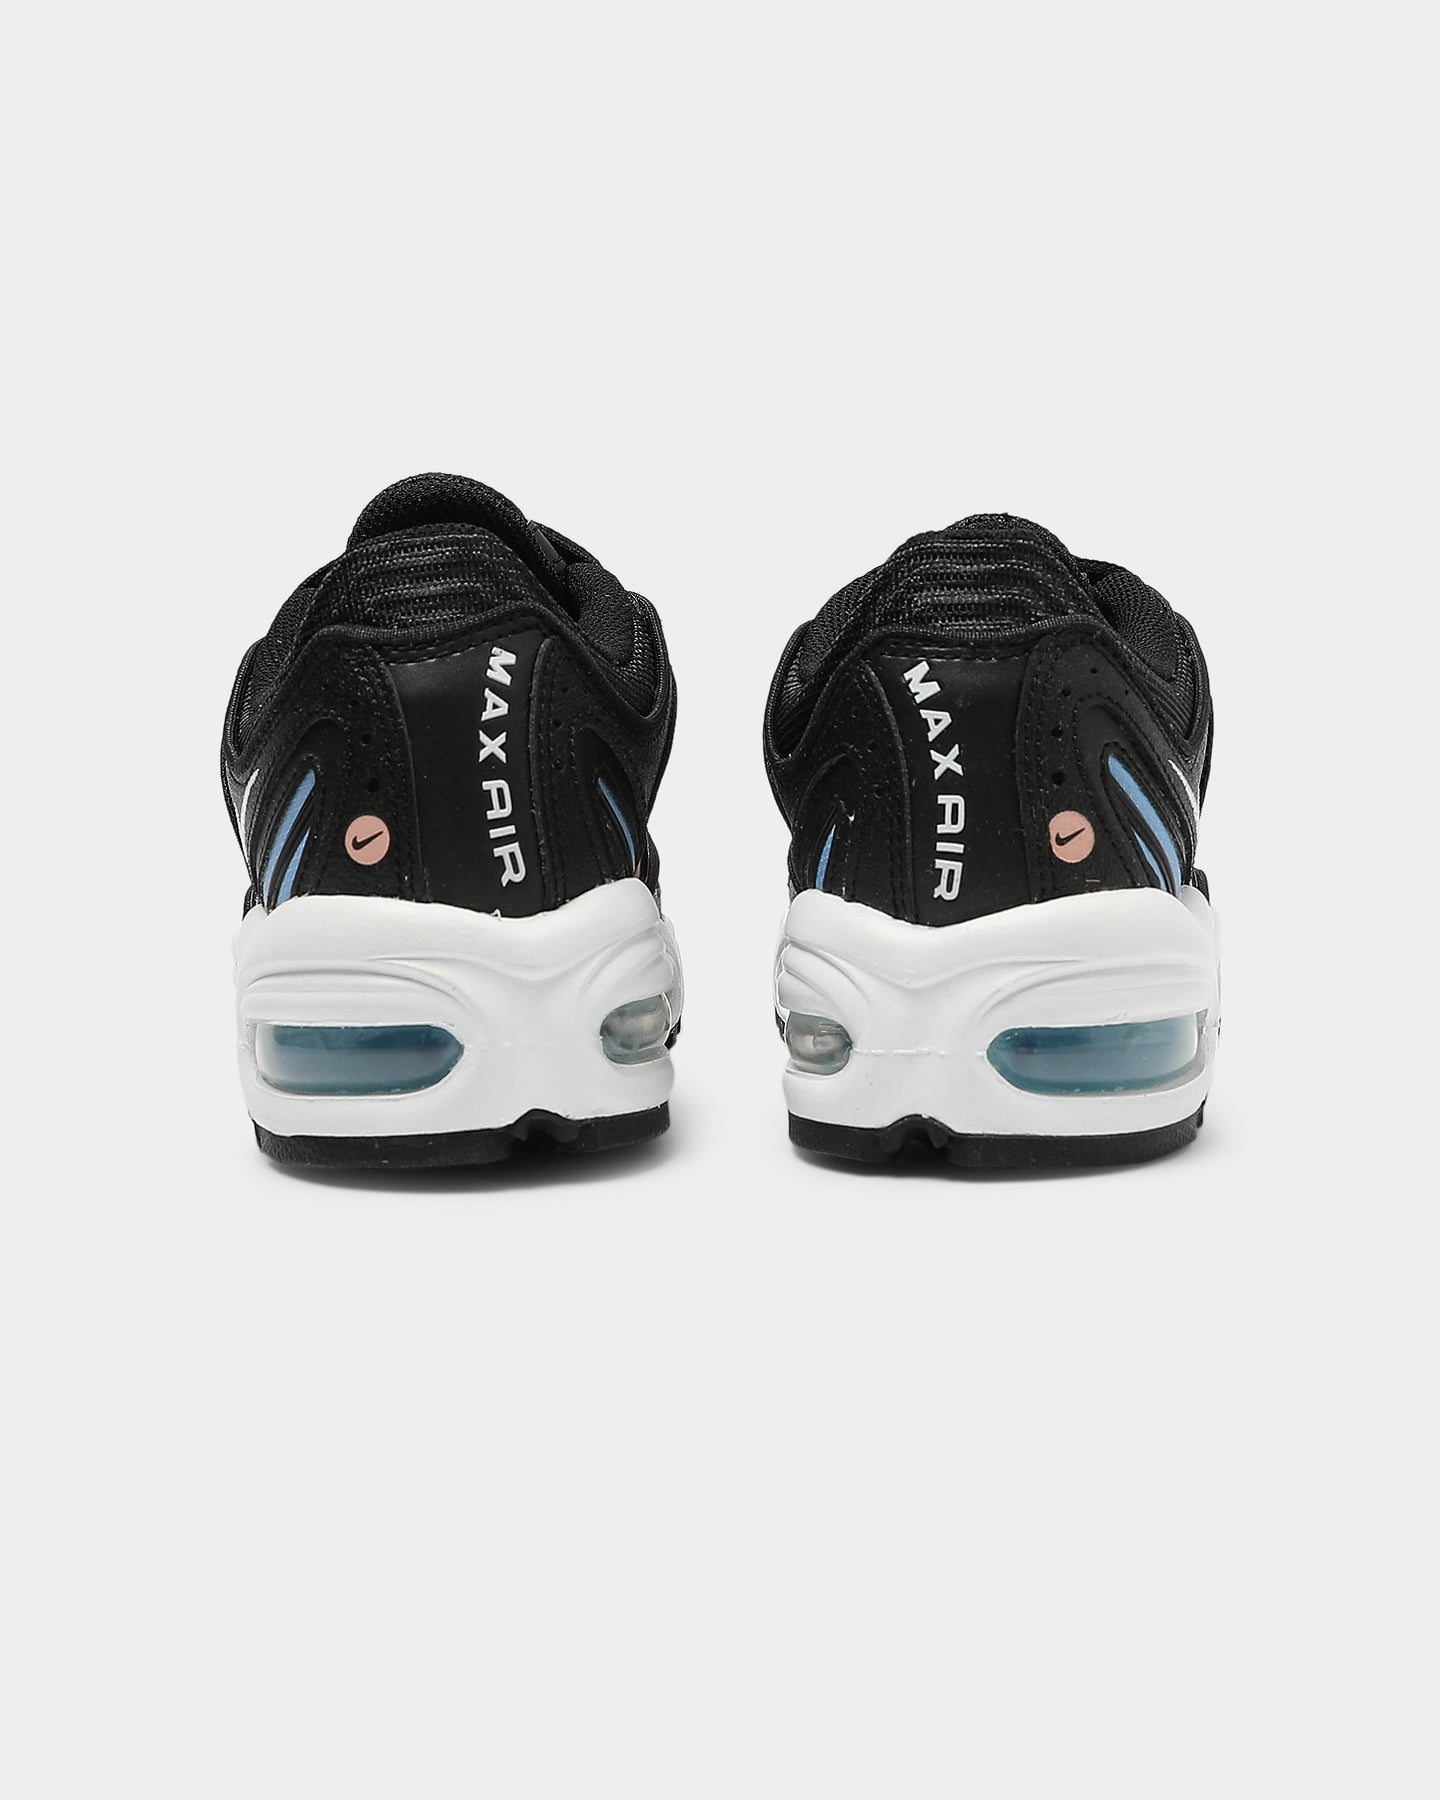 Women's Air Max Tailwind IV BlackWhiteMulti